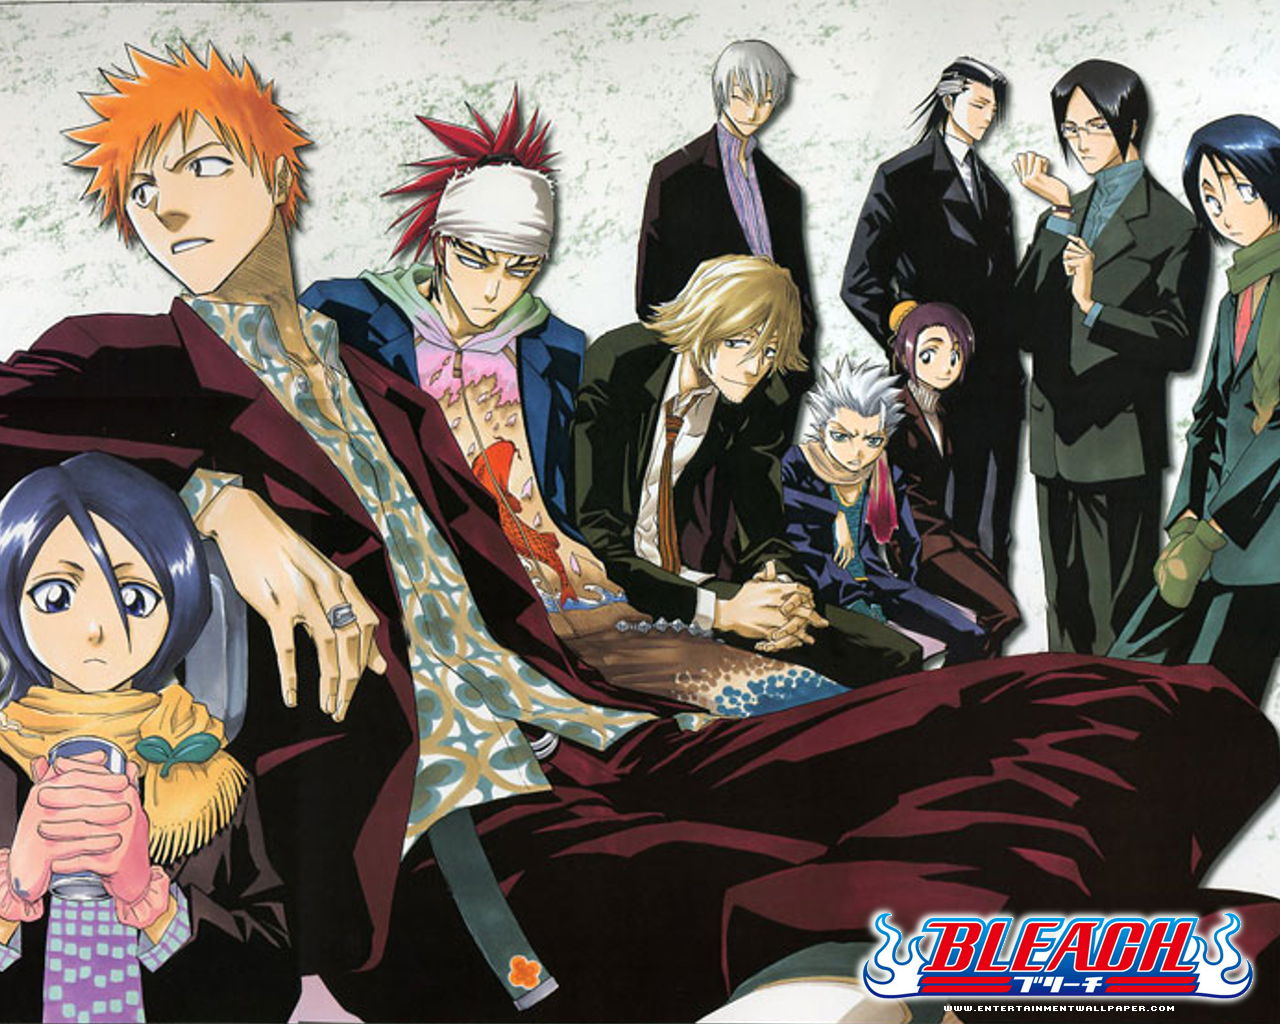 Anime Manga 4 All Bleach Anime Wallpapers 1280x1024